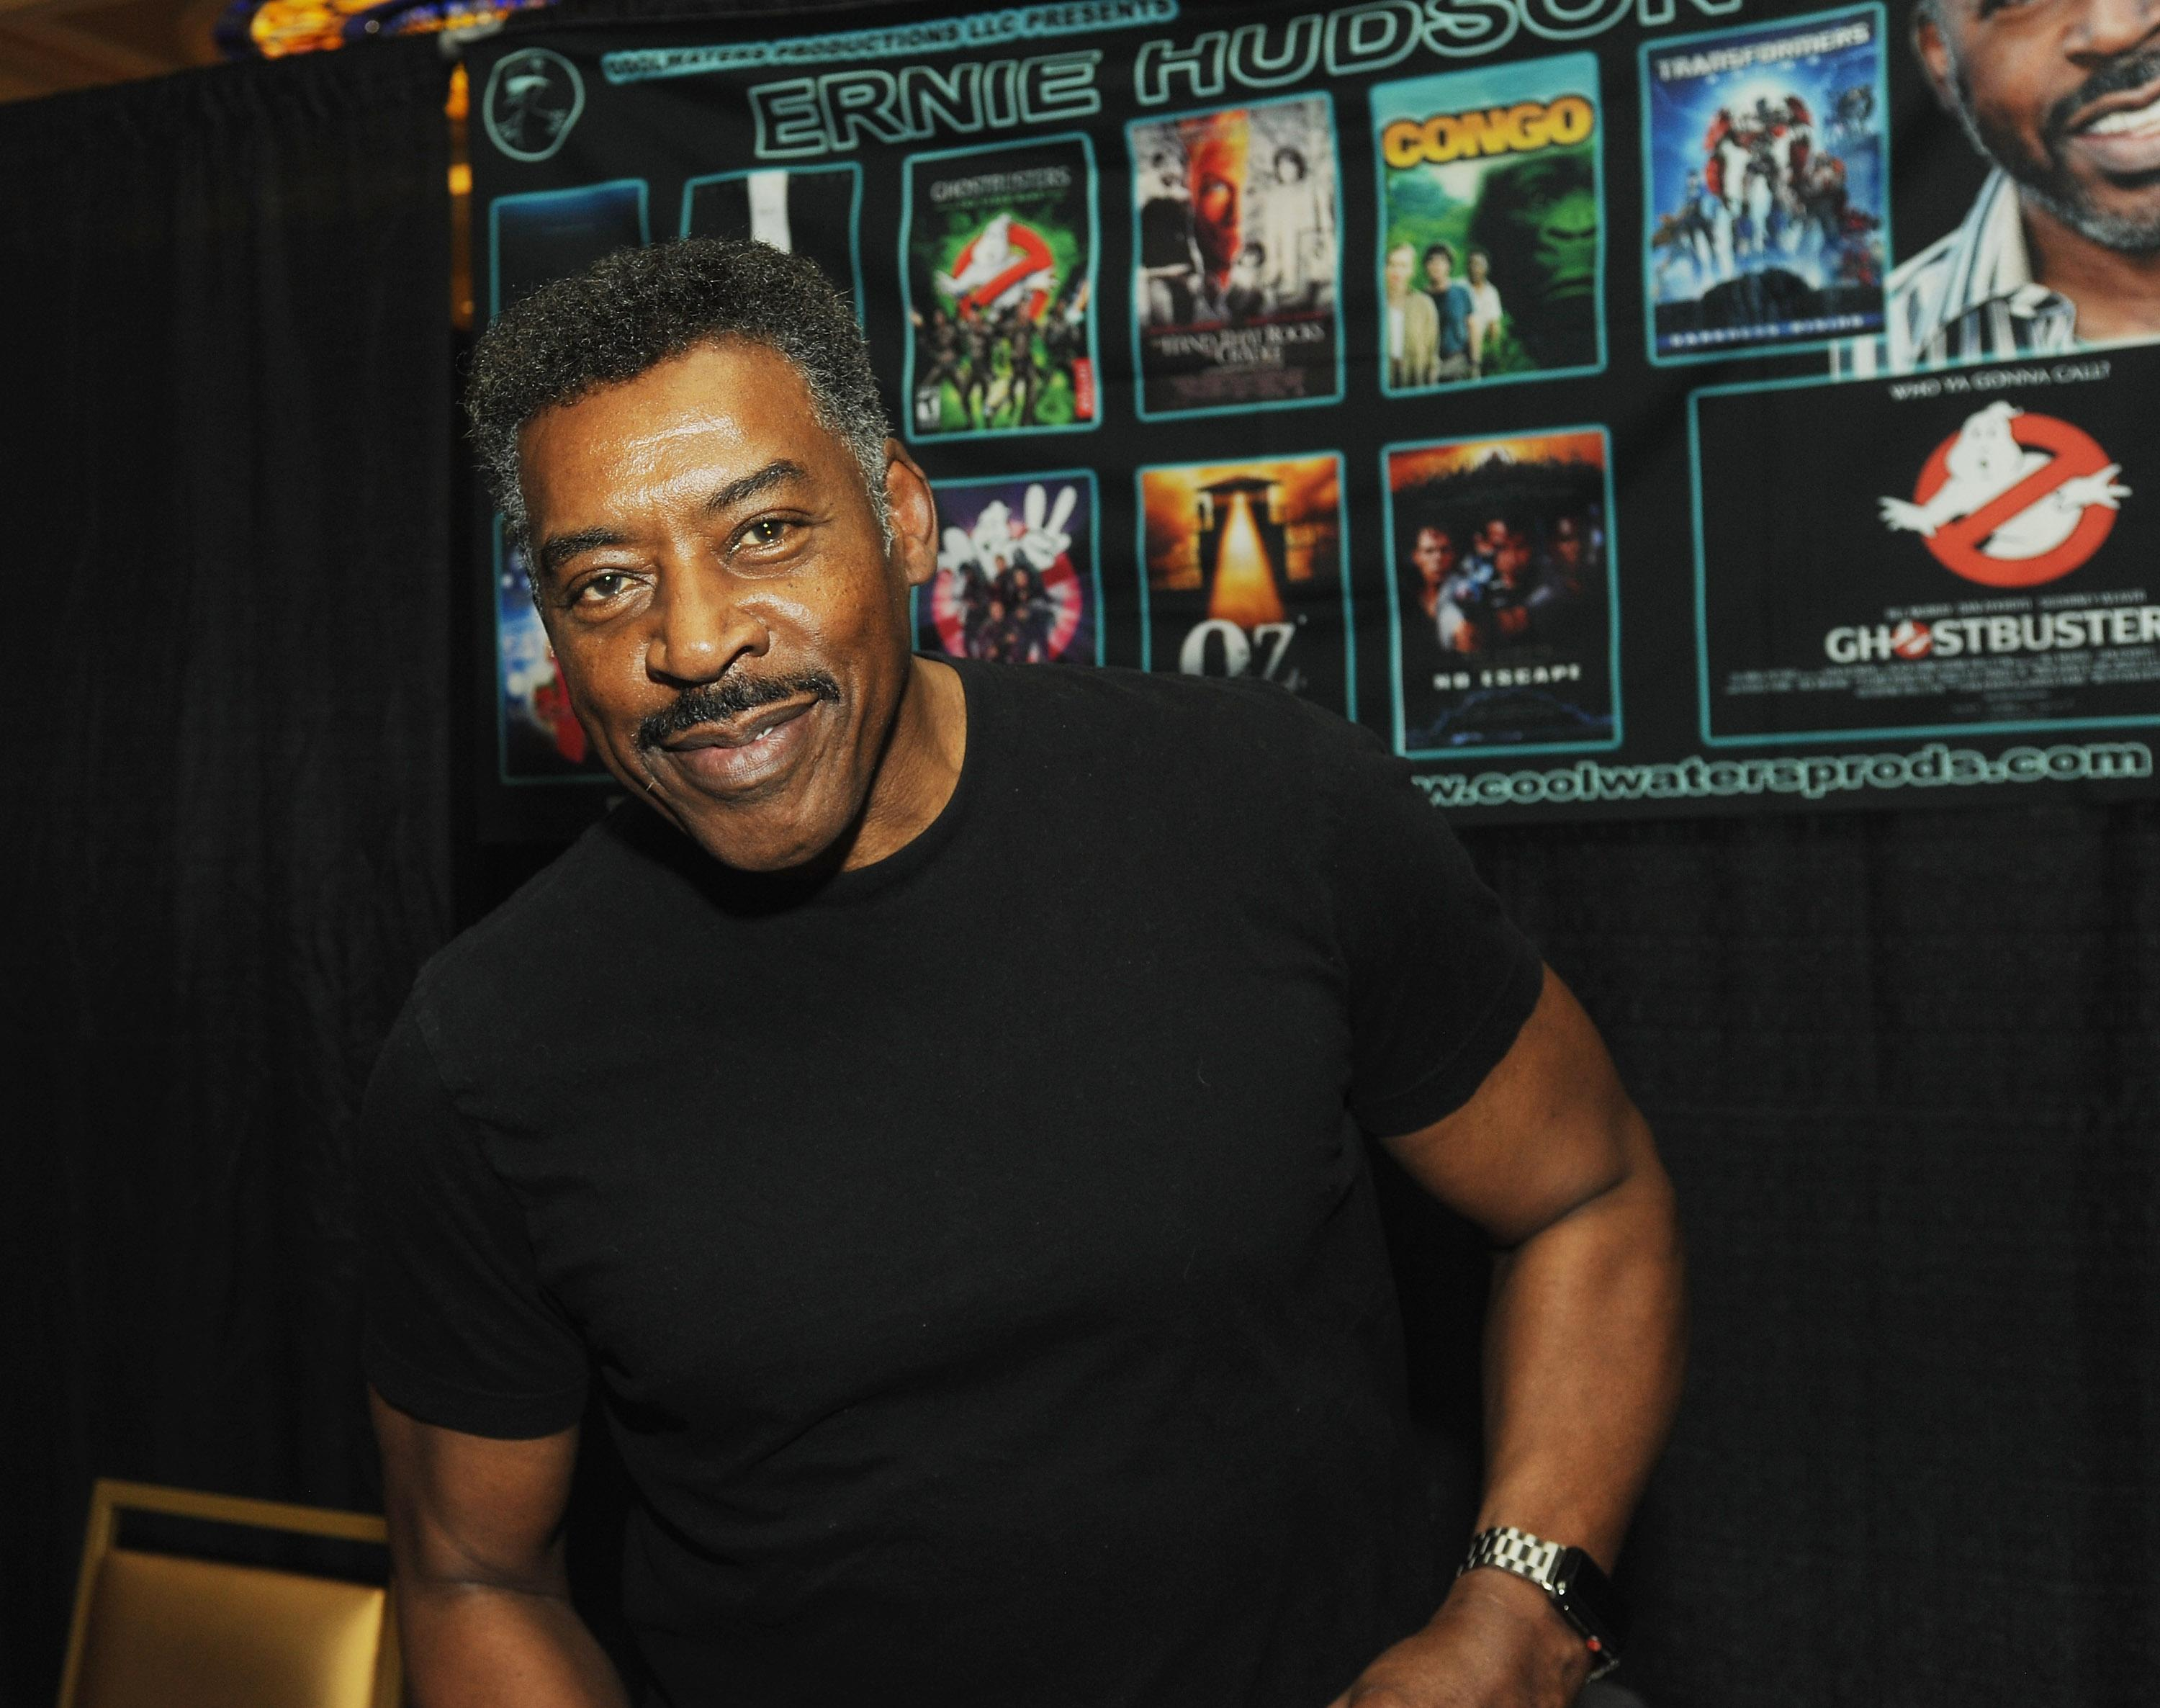 Ernie Hudson on the minimization of his 'Ghostbusters' character and race: 'You can't be a victim in this stuff'